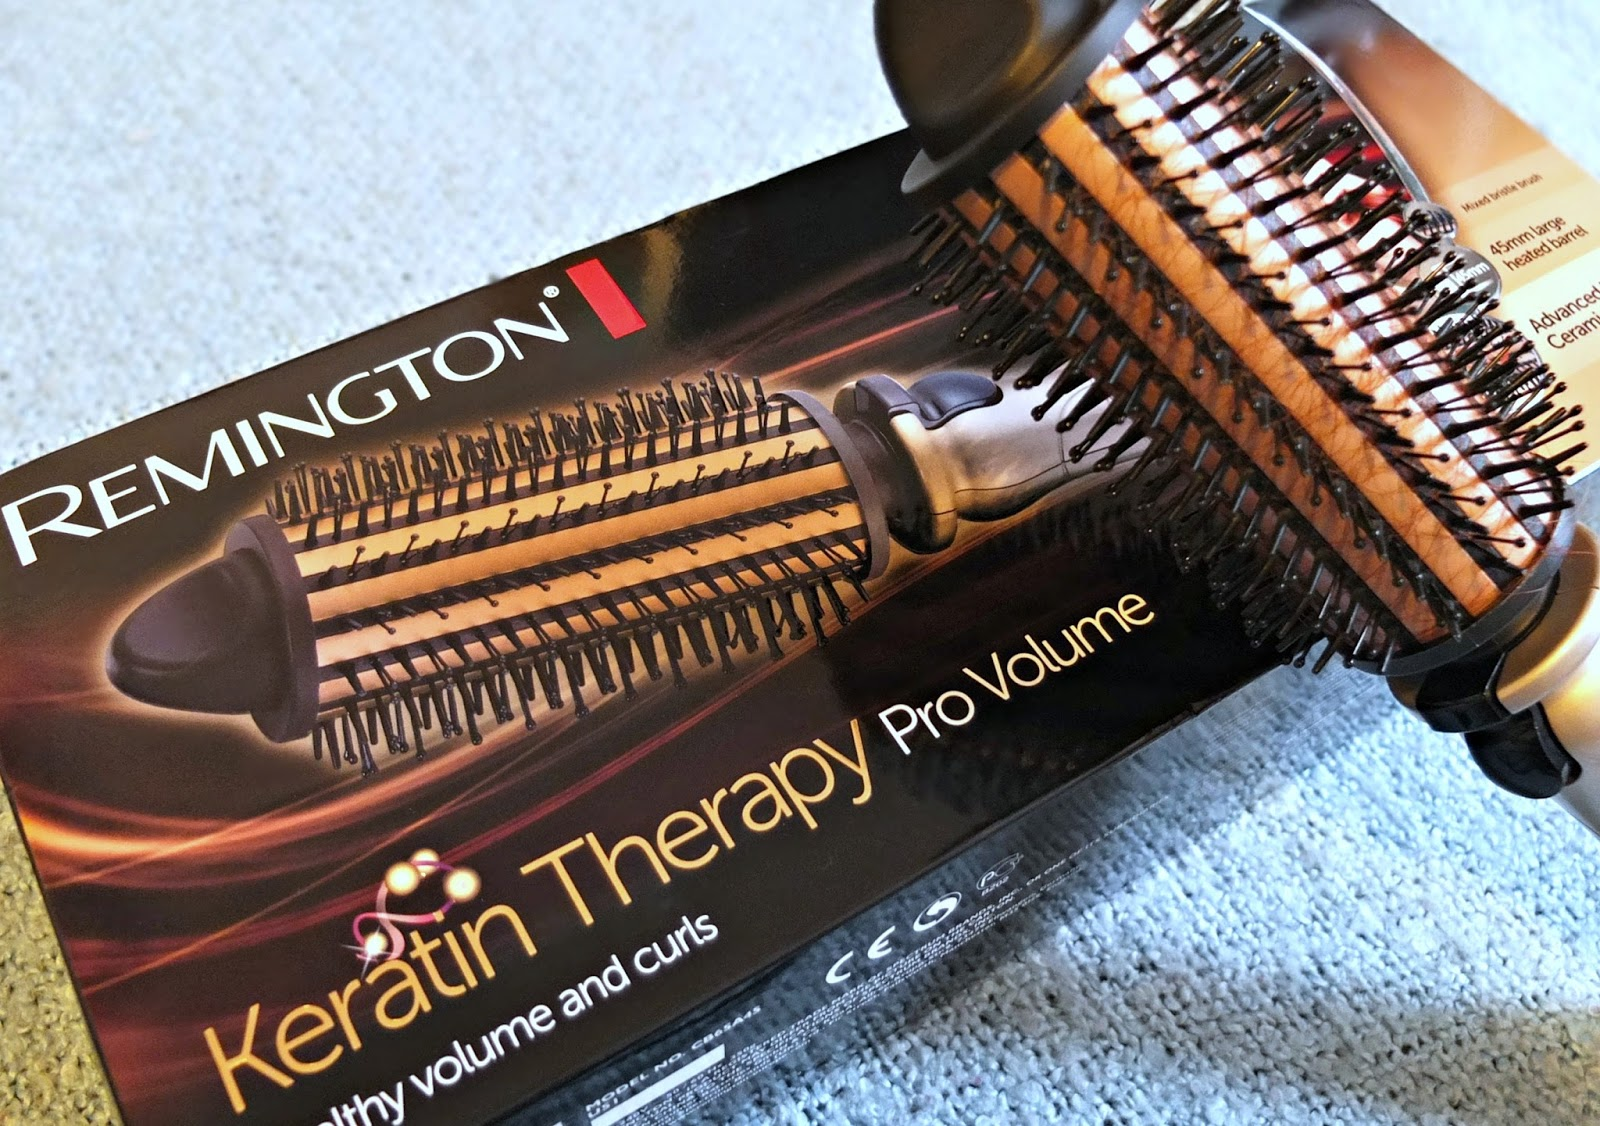 Remington Keratin Therapy Pro Volume hair styler review on Hello Terri Lowe